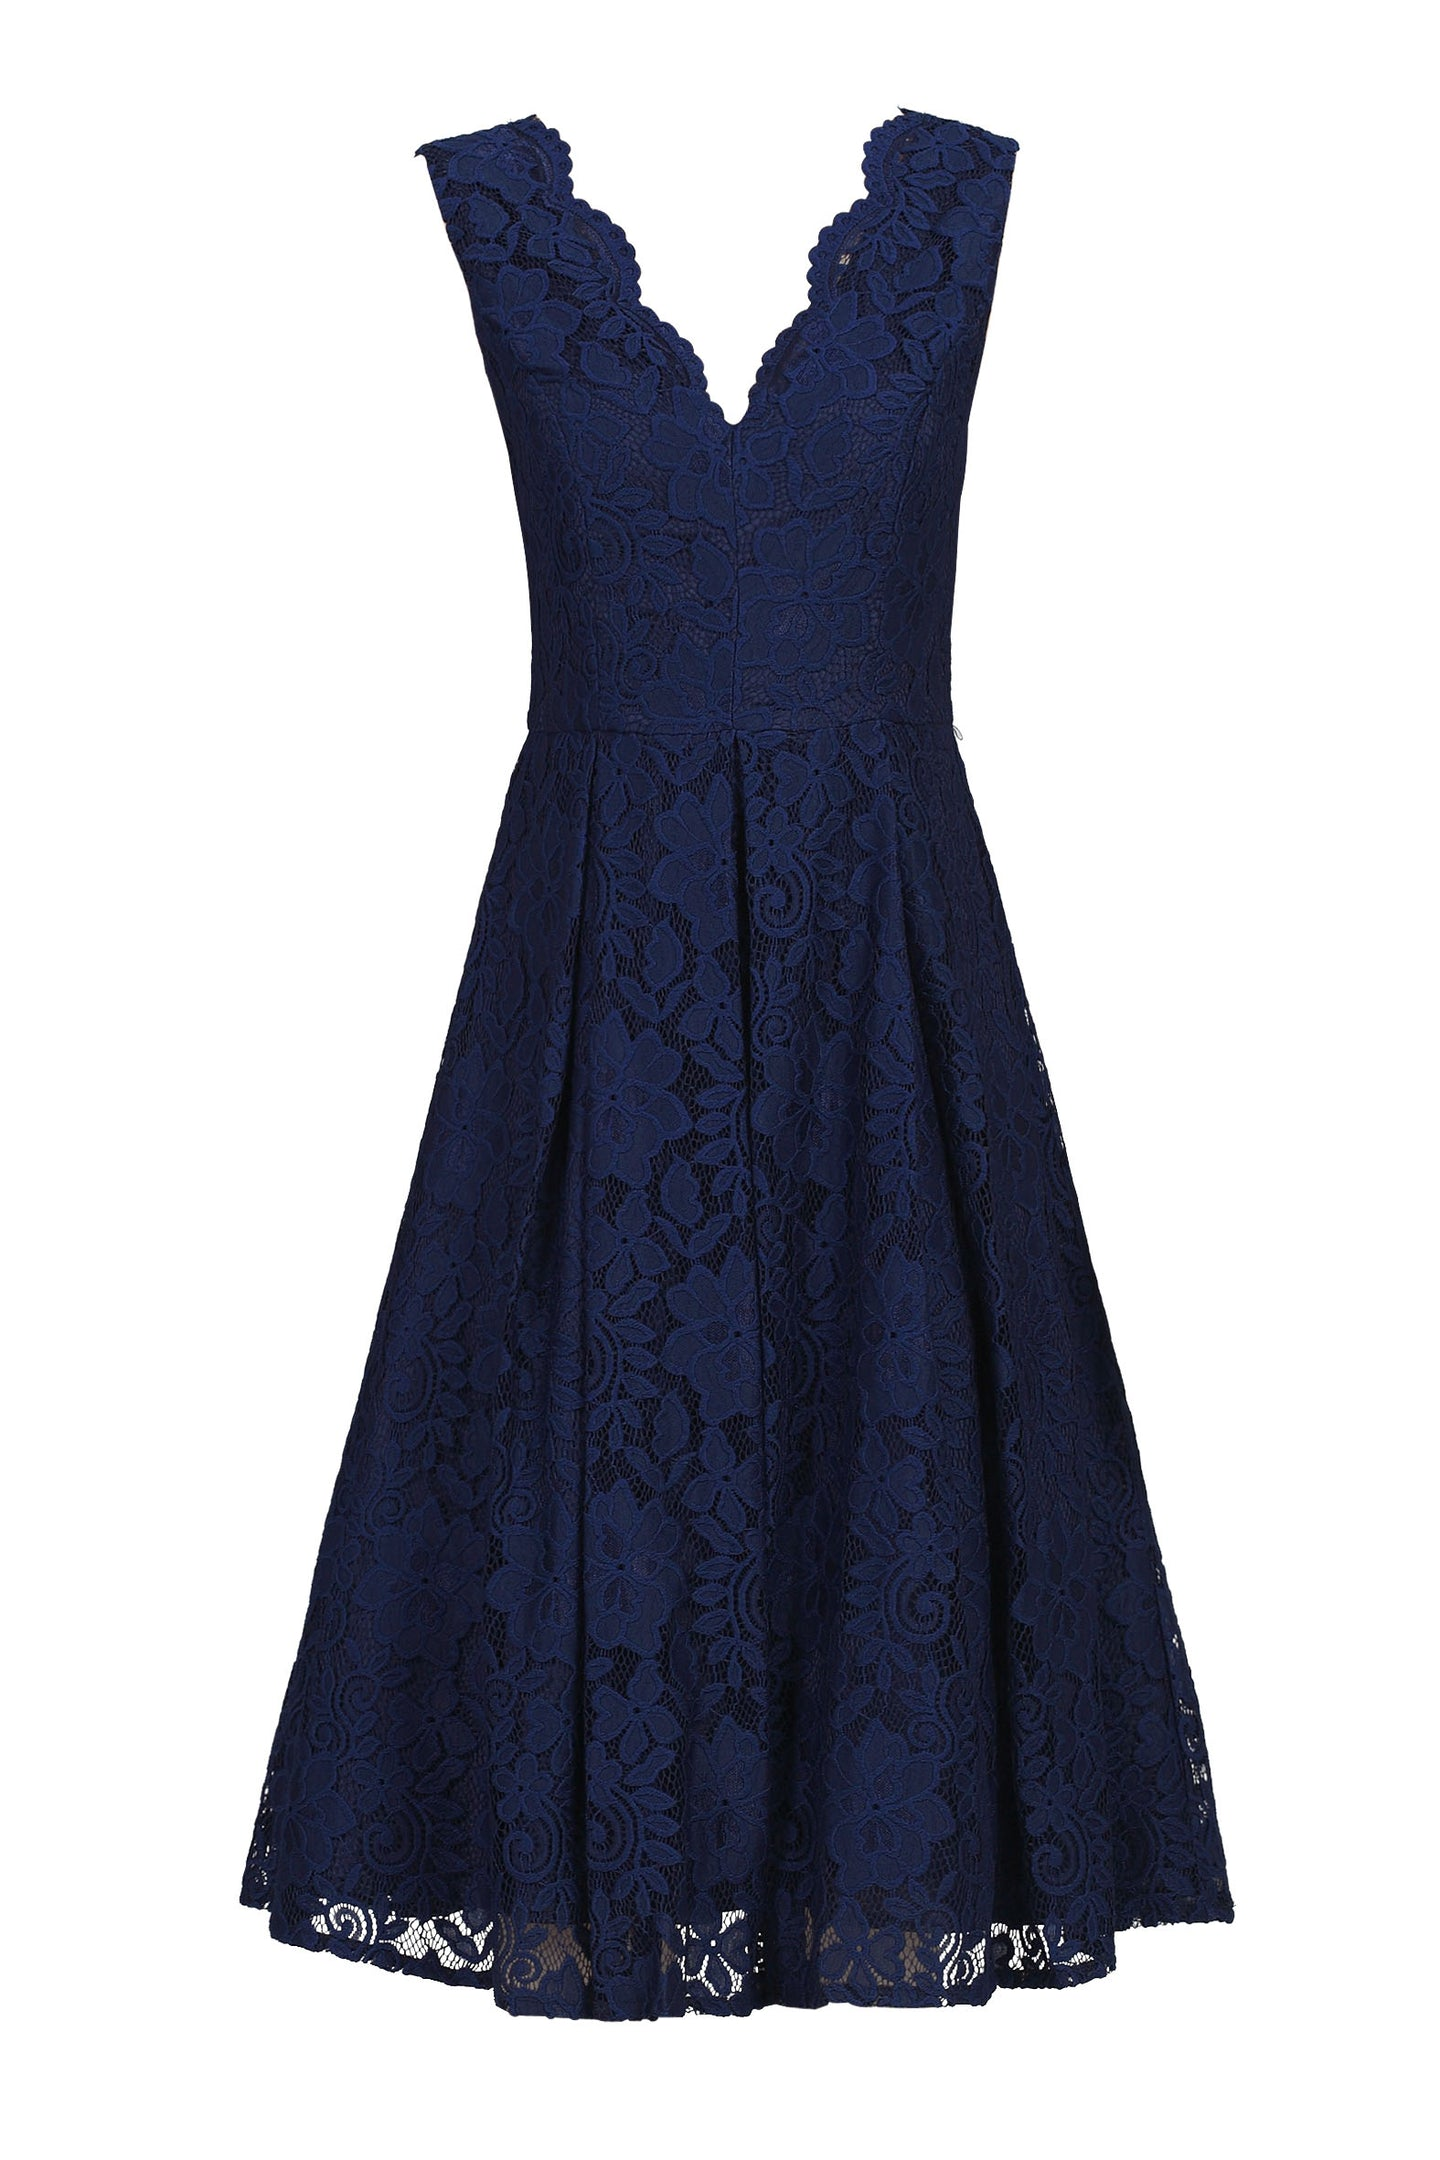 Scalloped V Neck Pleated Lace Prom Dress, Navy